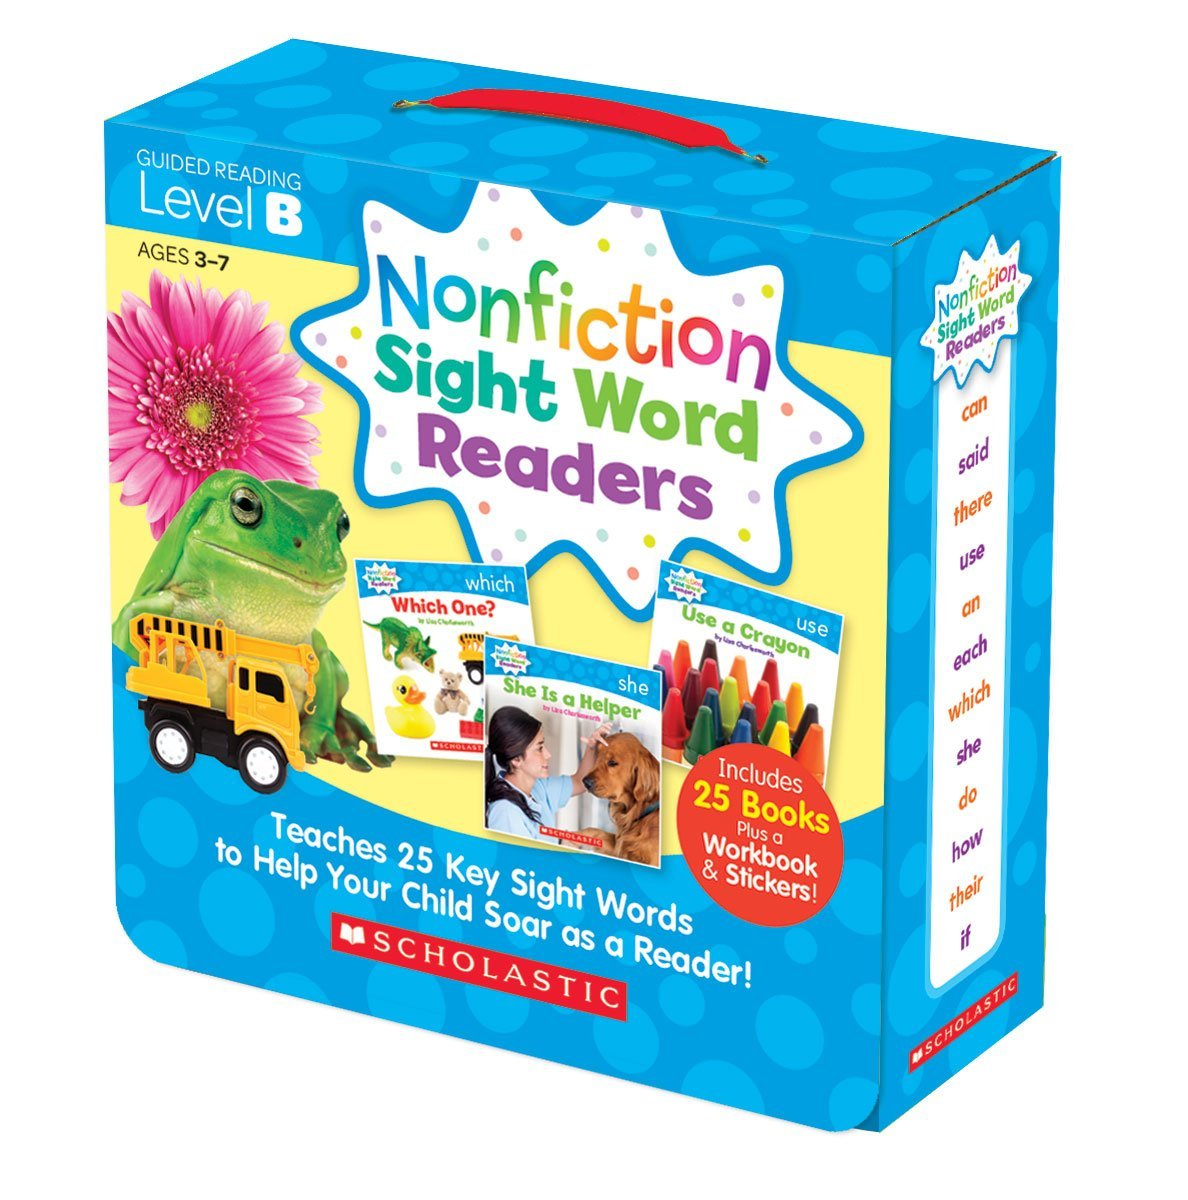 SC 584282 SIGHT WORD READERS LEVEL B